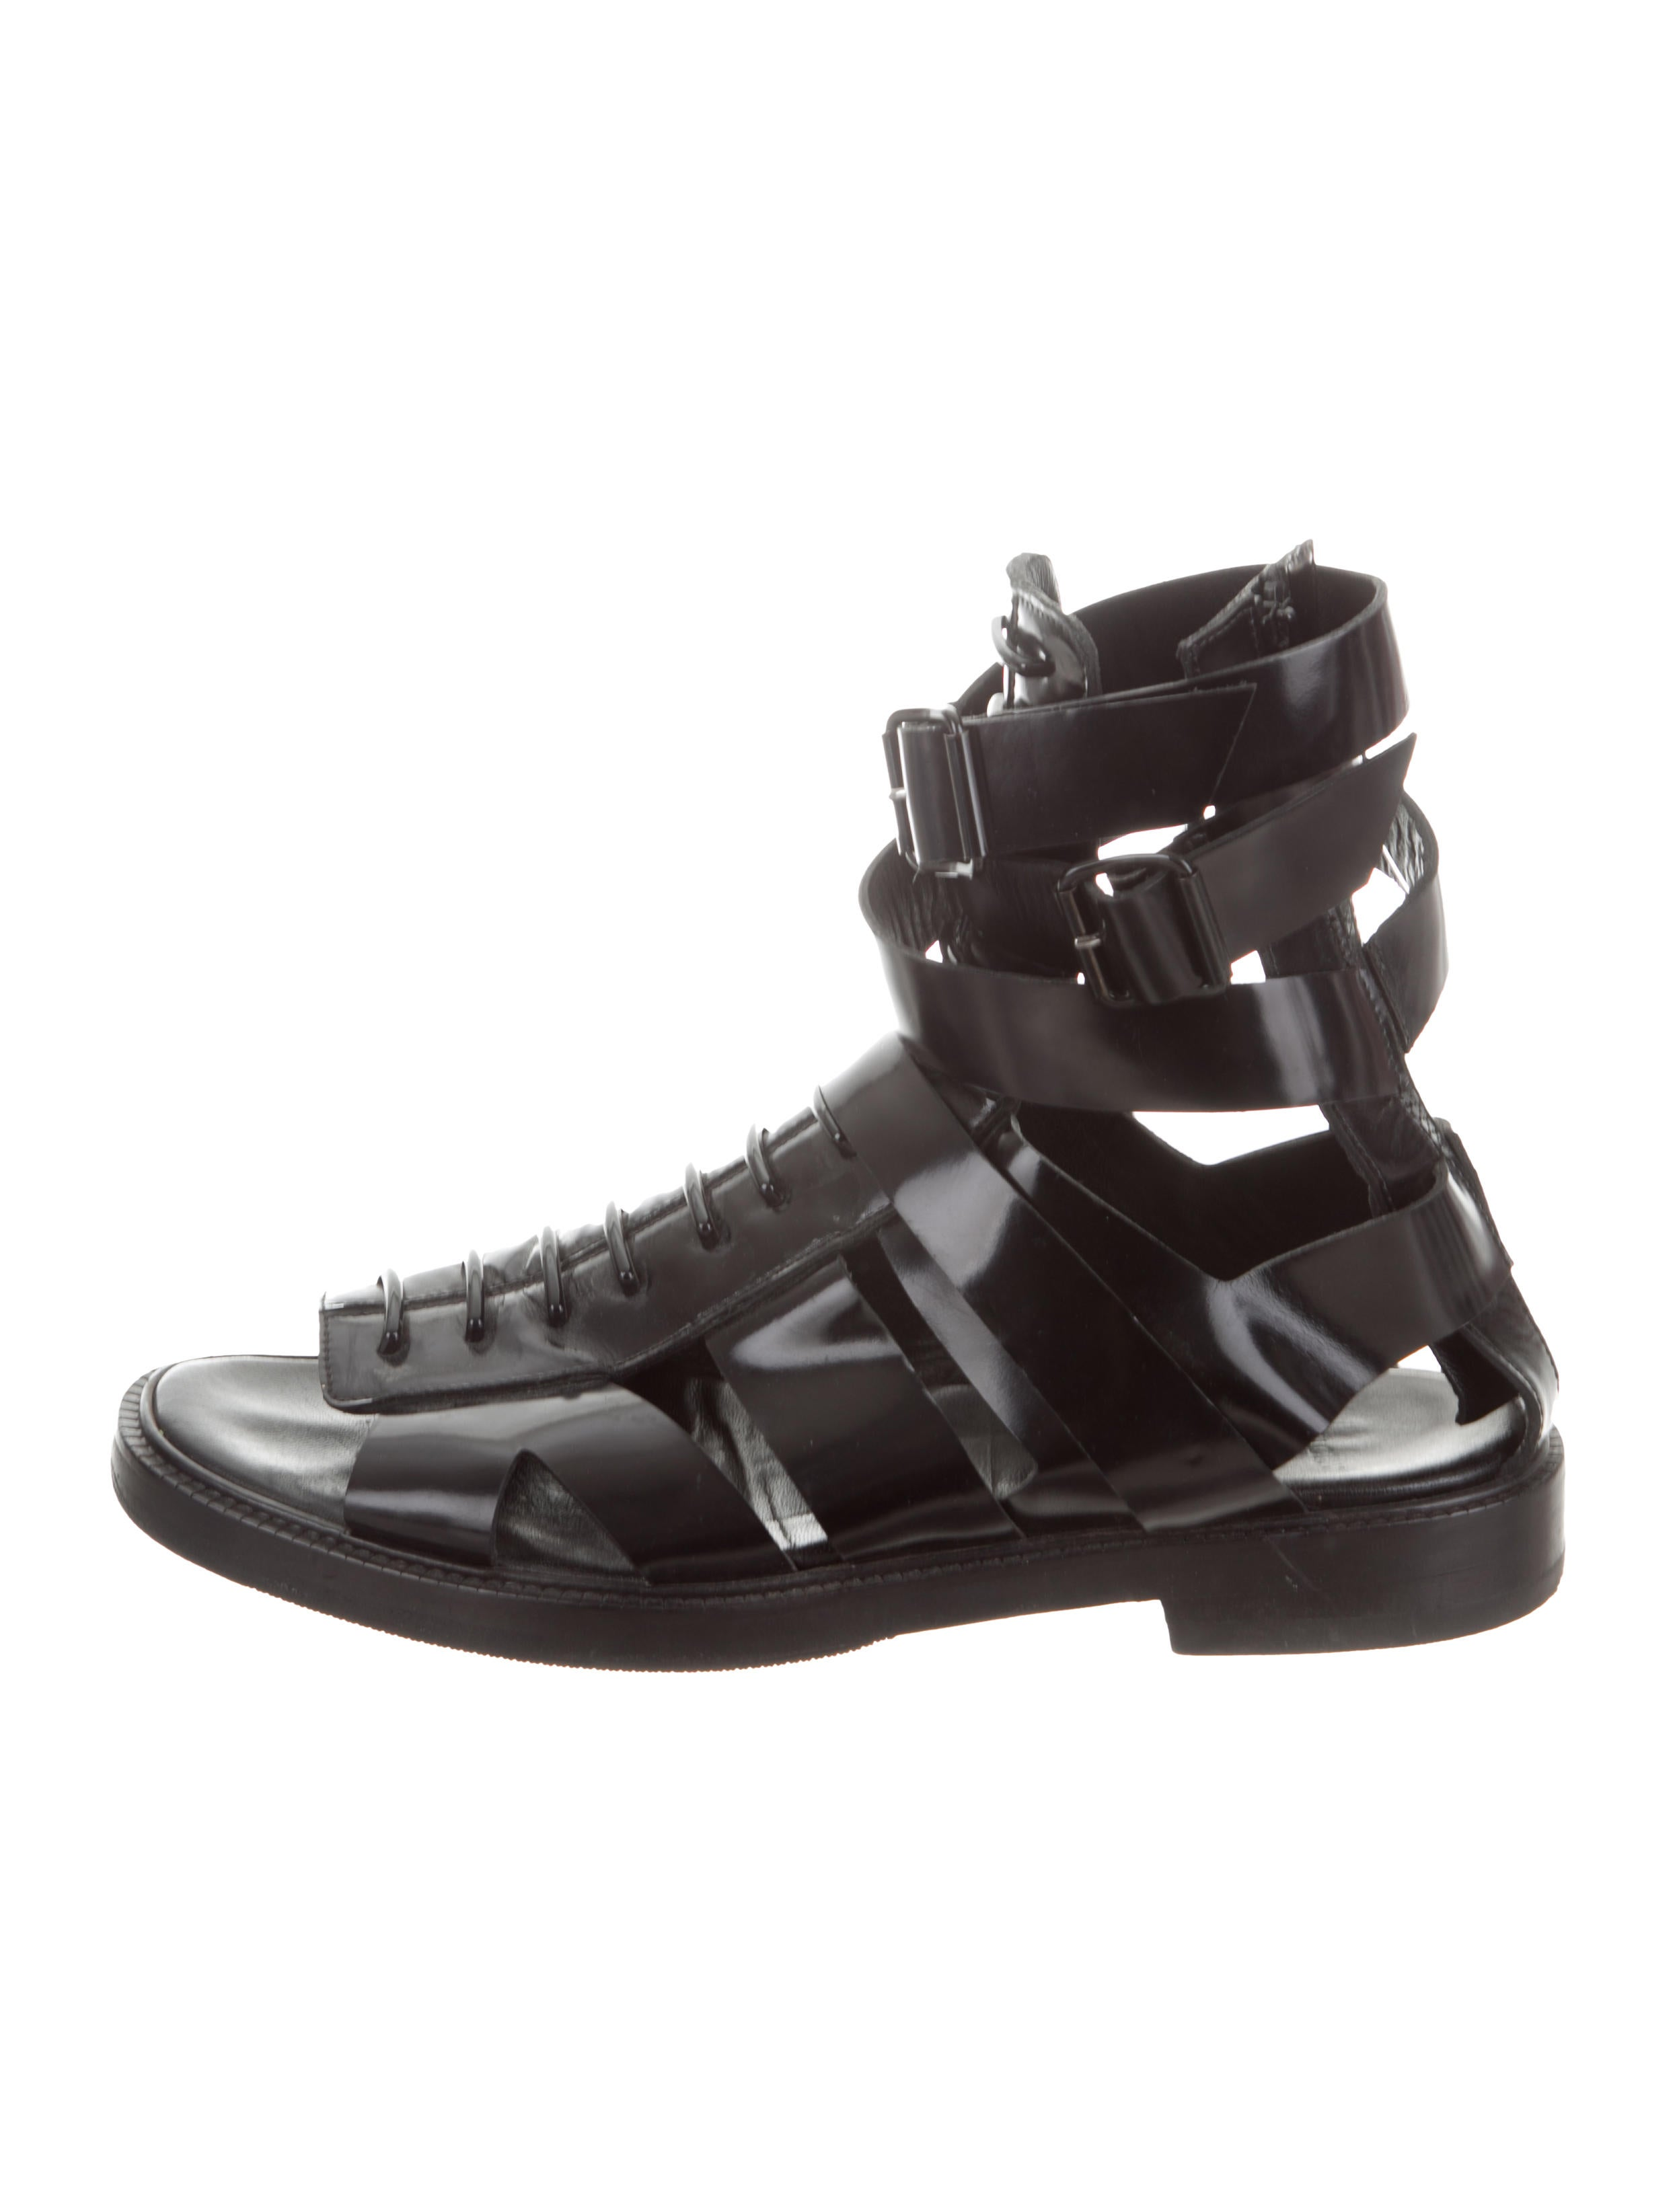 7f2f4244ab2c Givenchy Leather Gladiator Sandals - Shoes - GIV57890